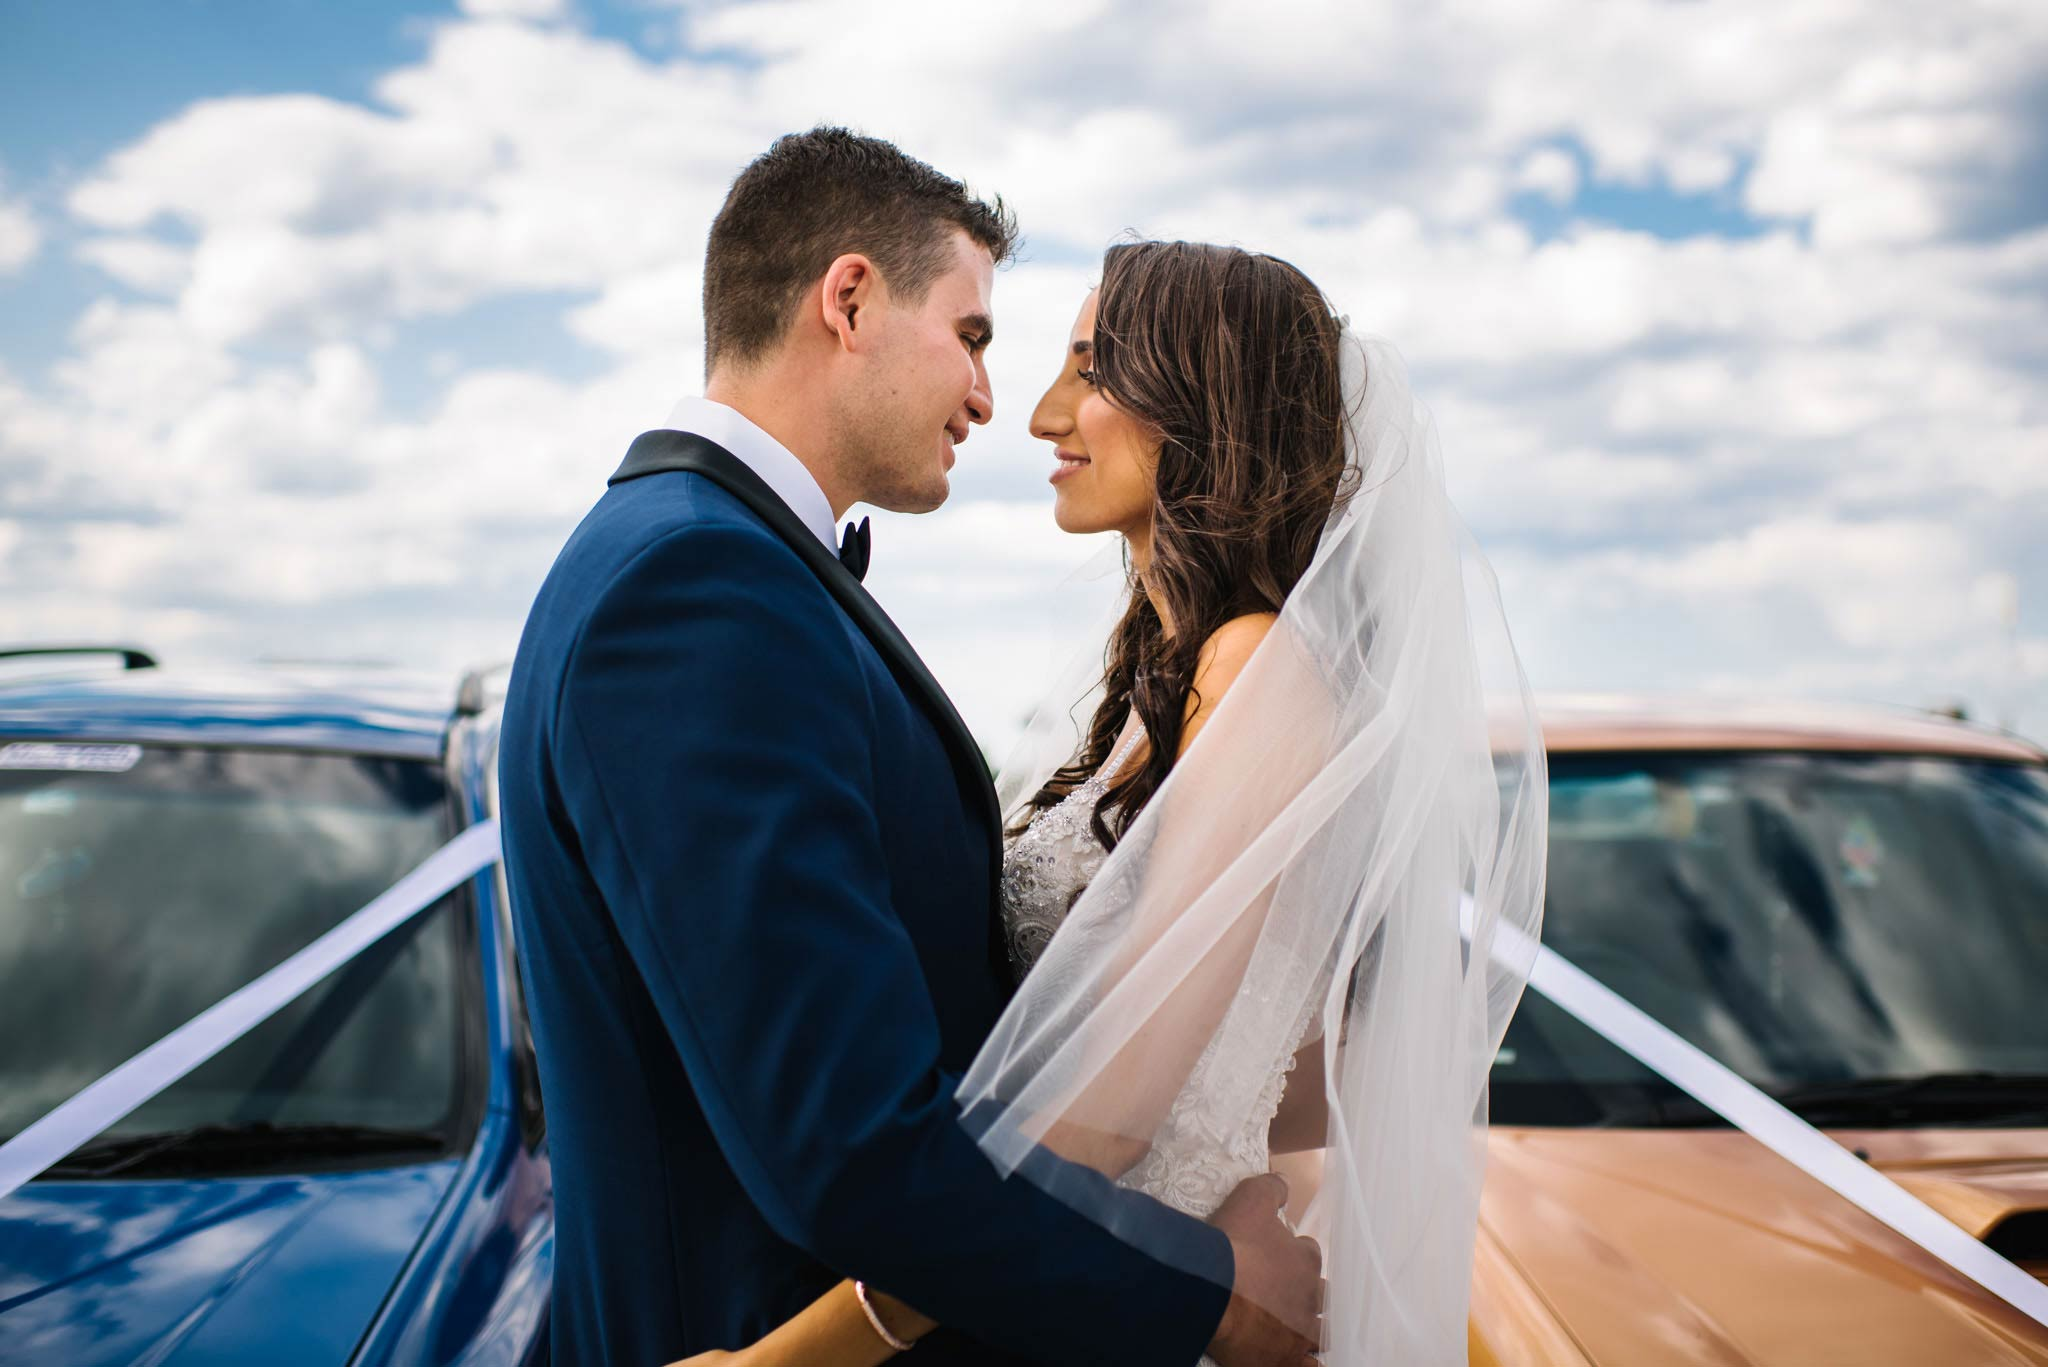 Newlyweds embracing in front of muscle wedding cars